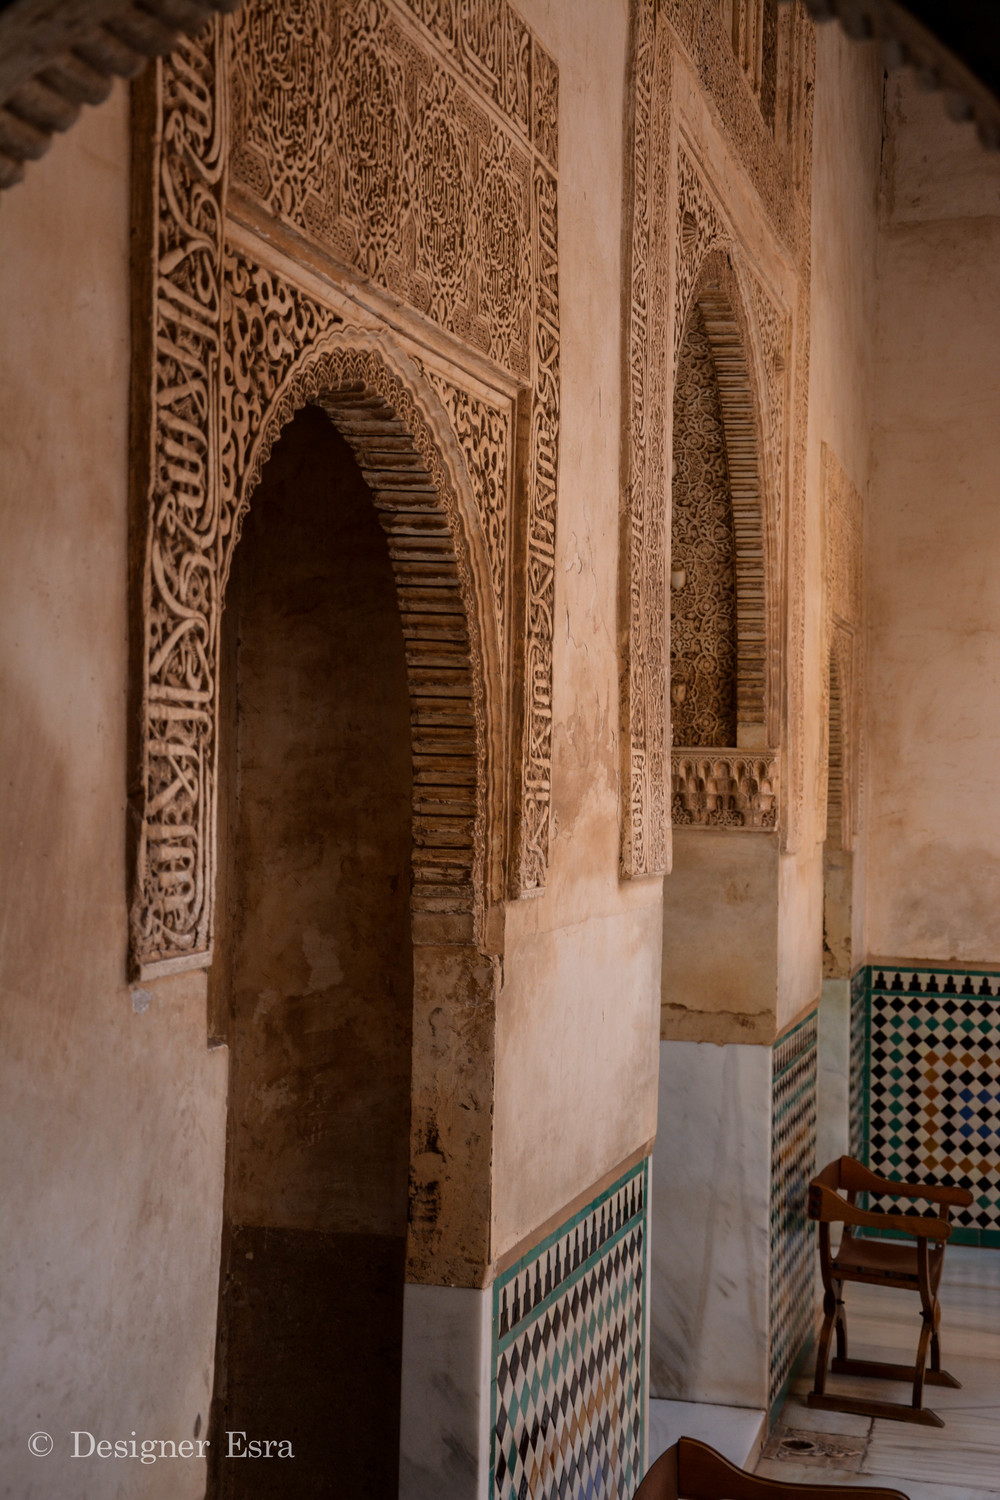 Islamic Patterns in Granada